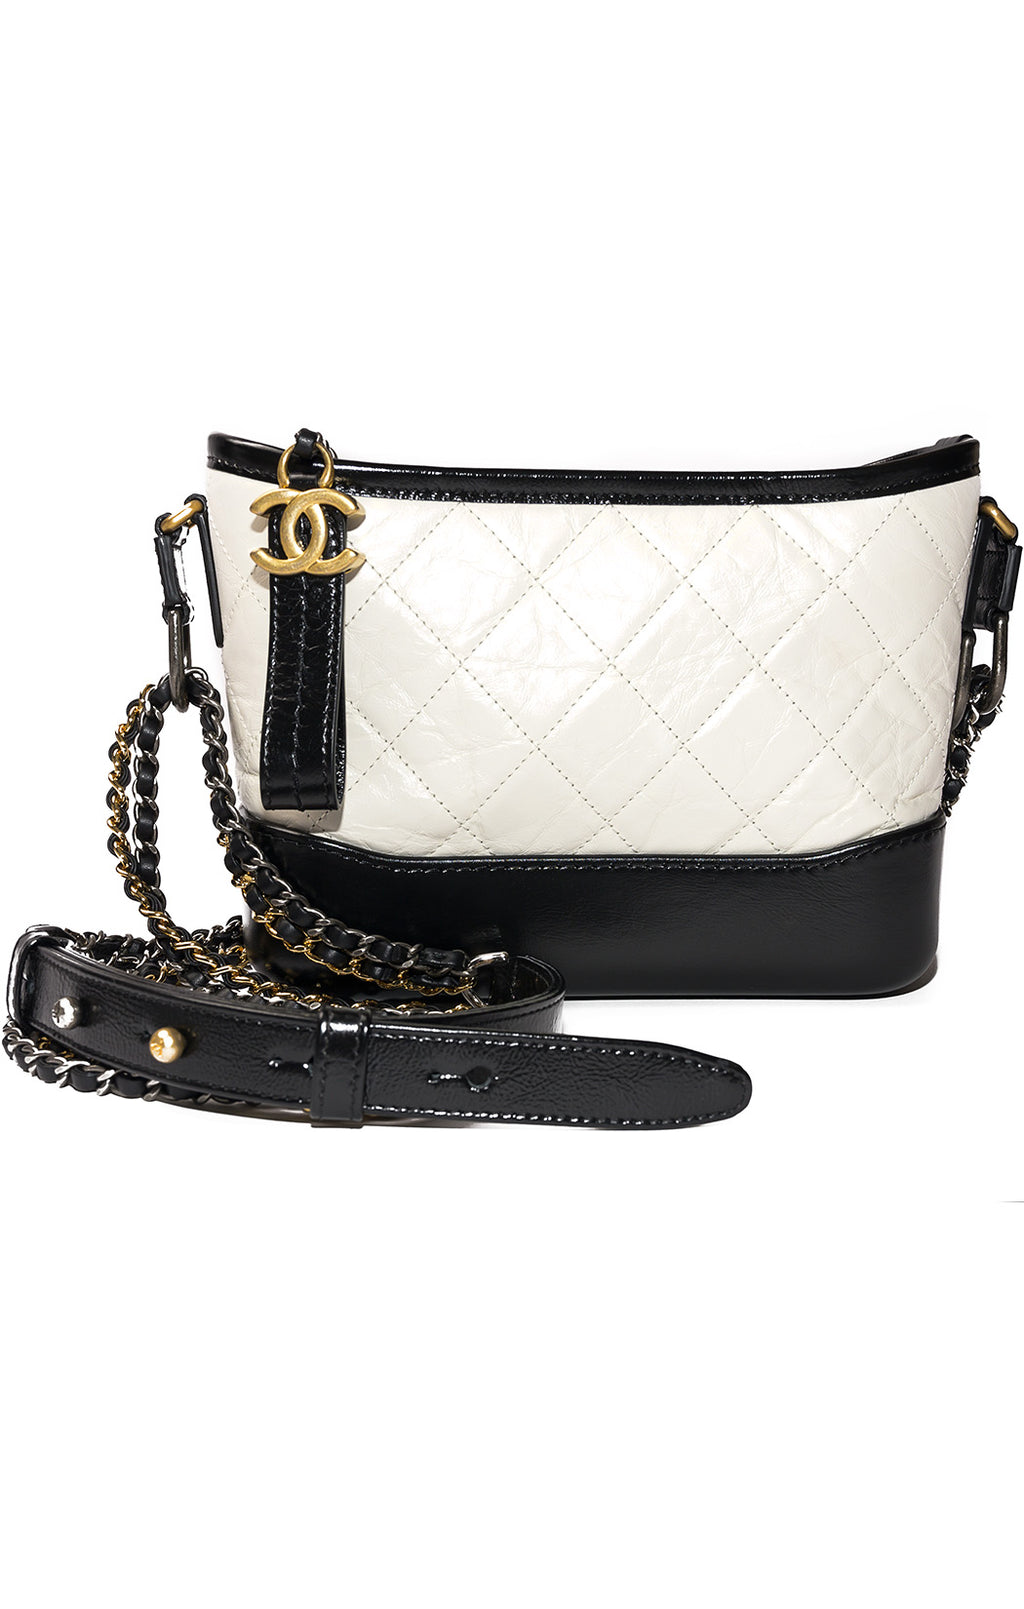 "Front view of CHANEL Handbag Size: 8"" W x 6"" H x 3"" D"